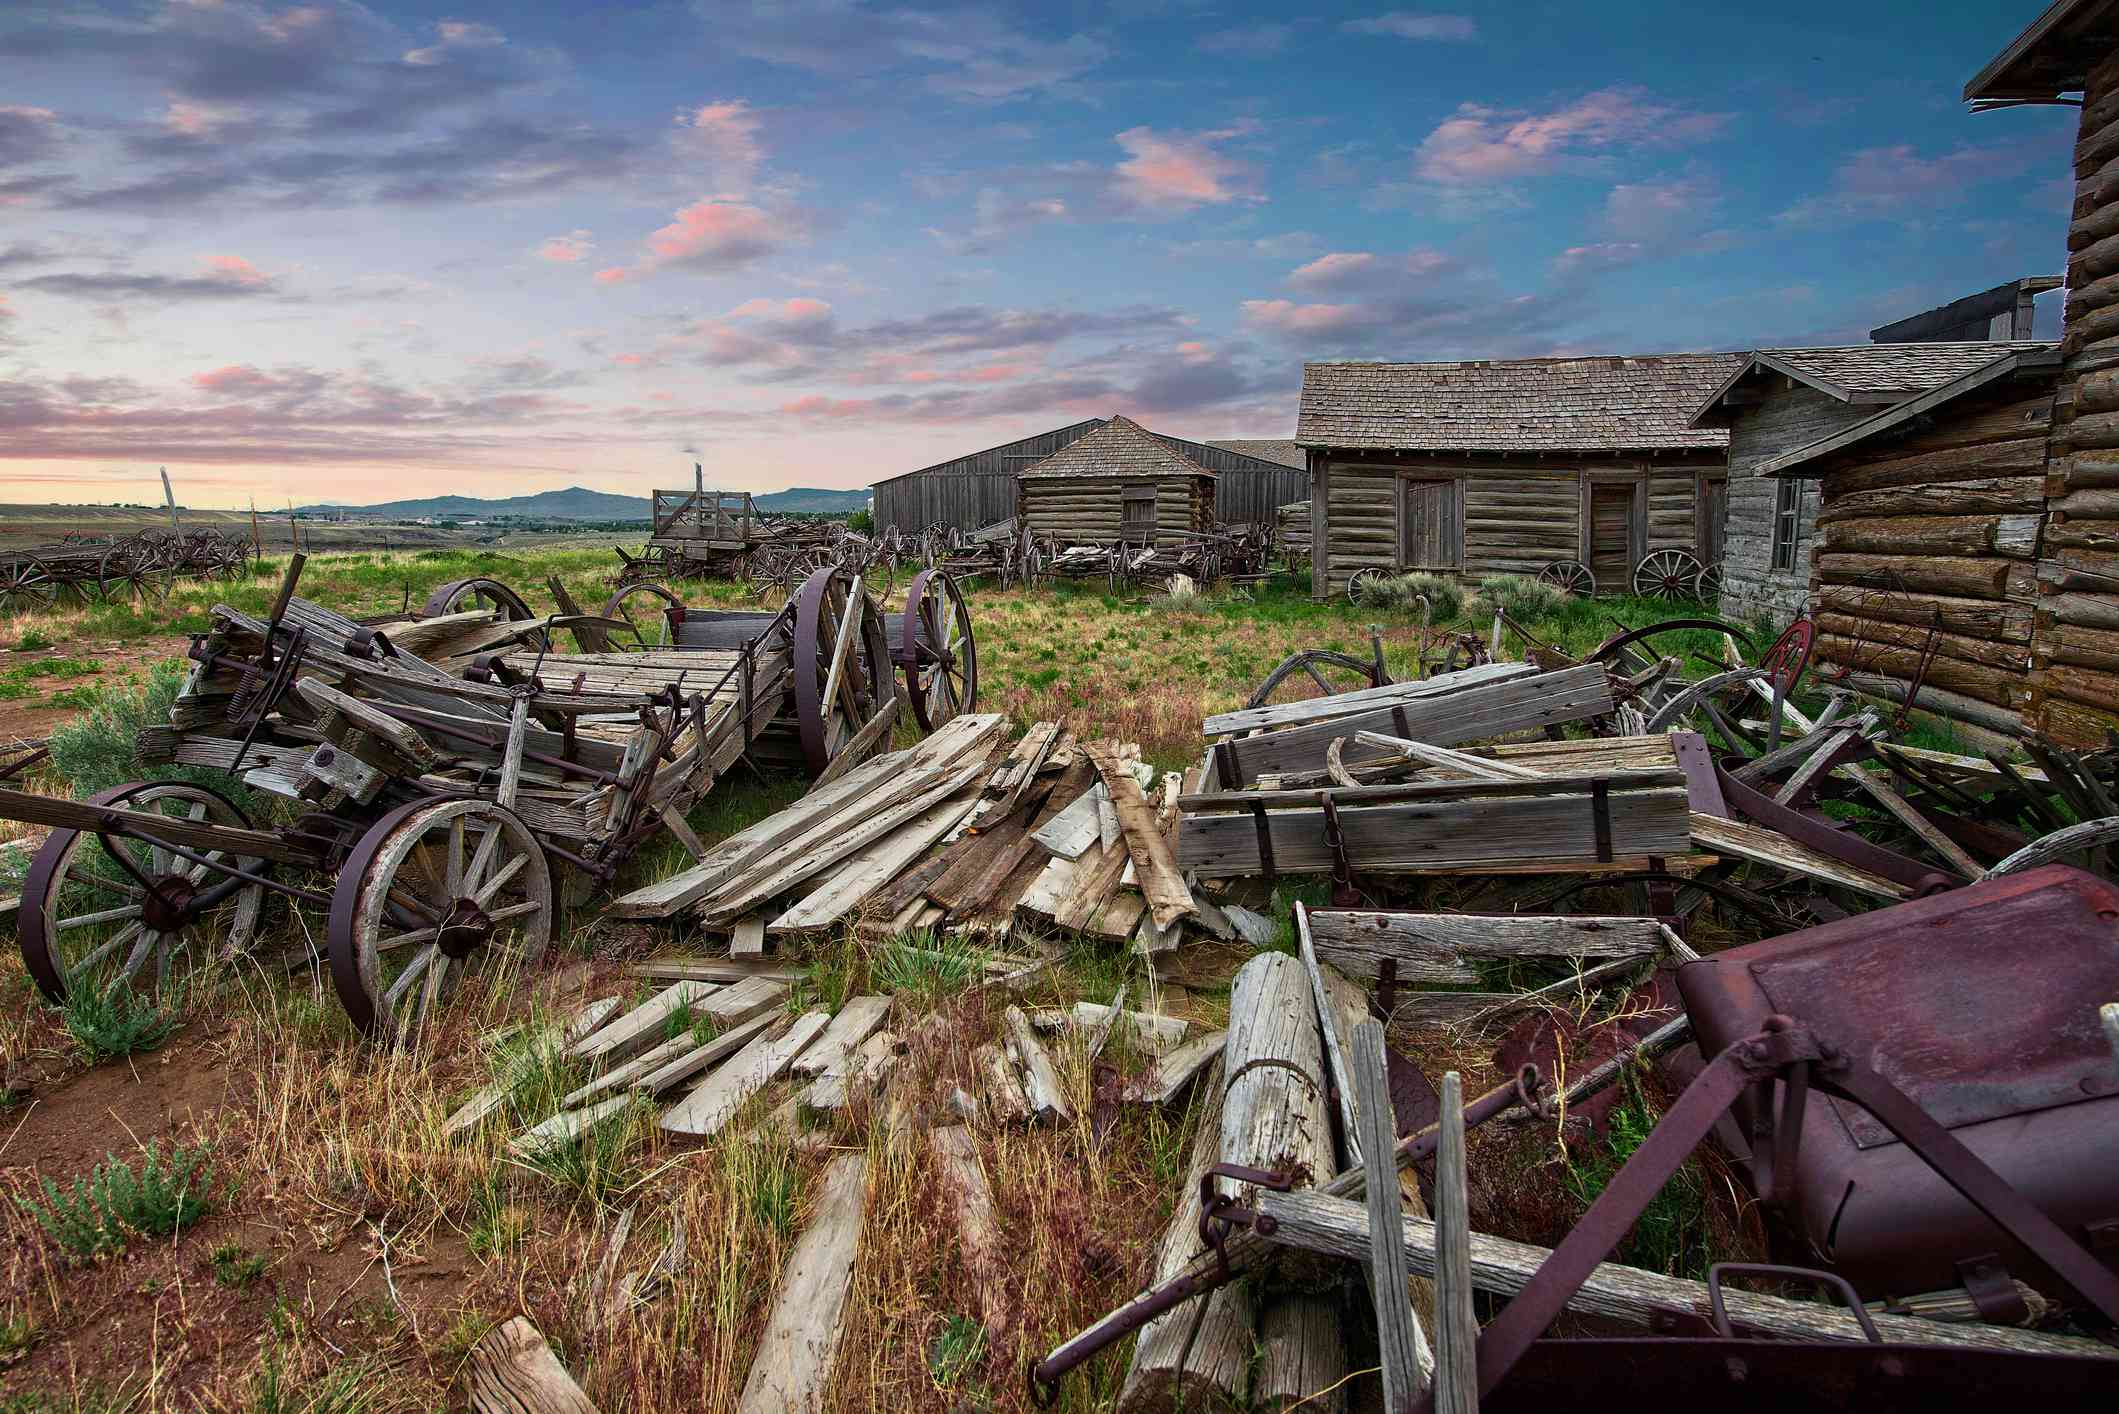 small log houses and broken down wooden wagons in an overgrown field